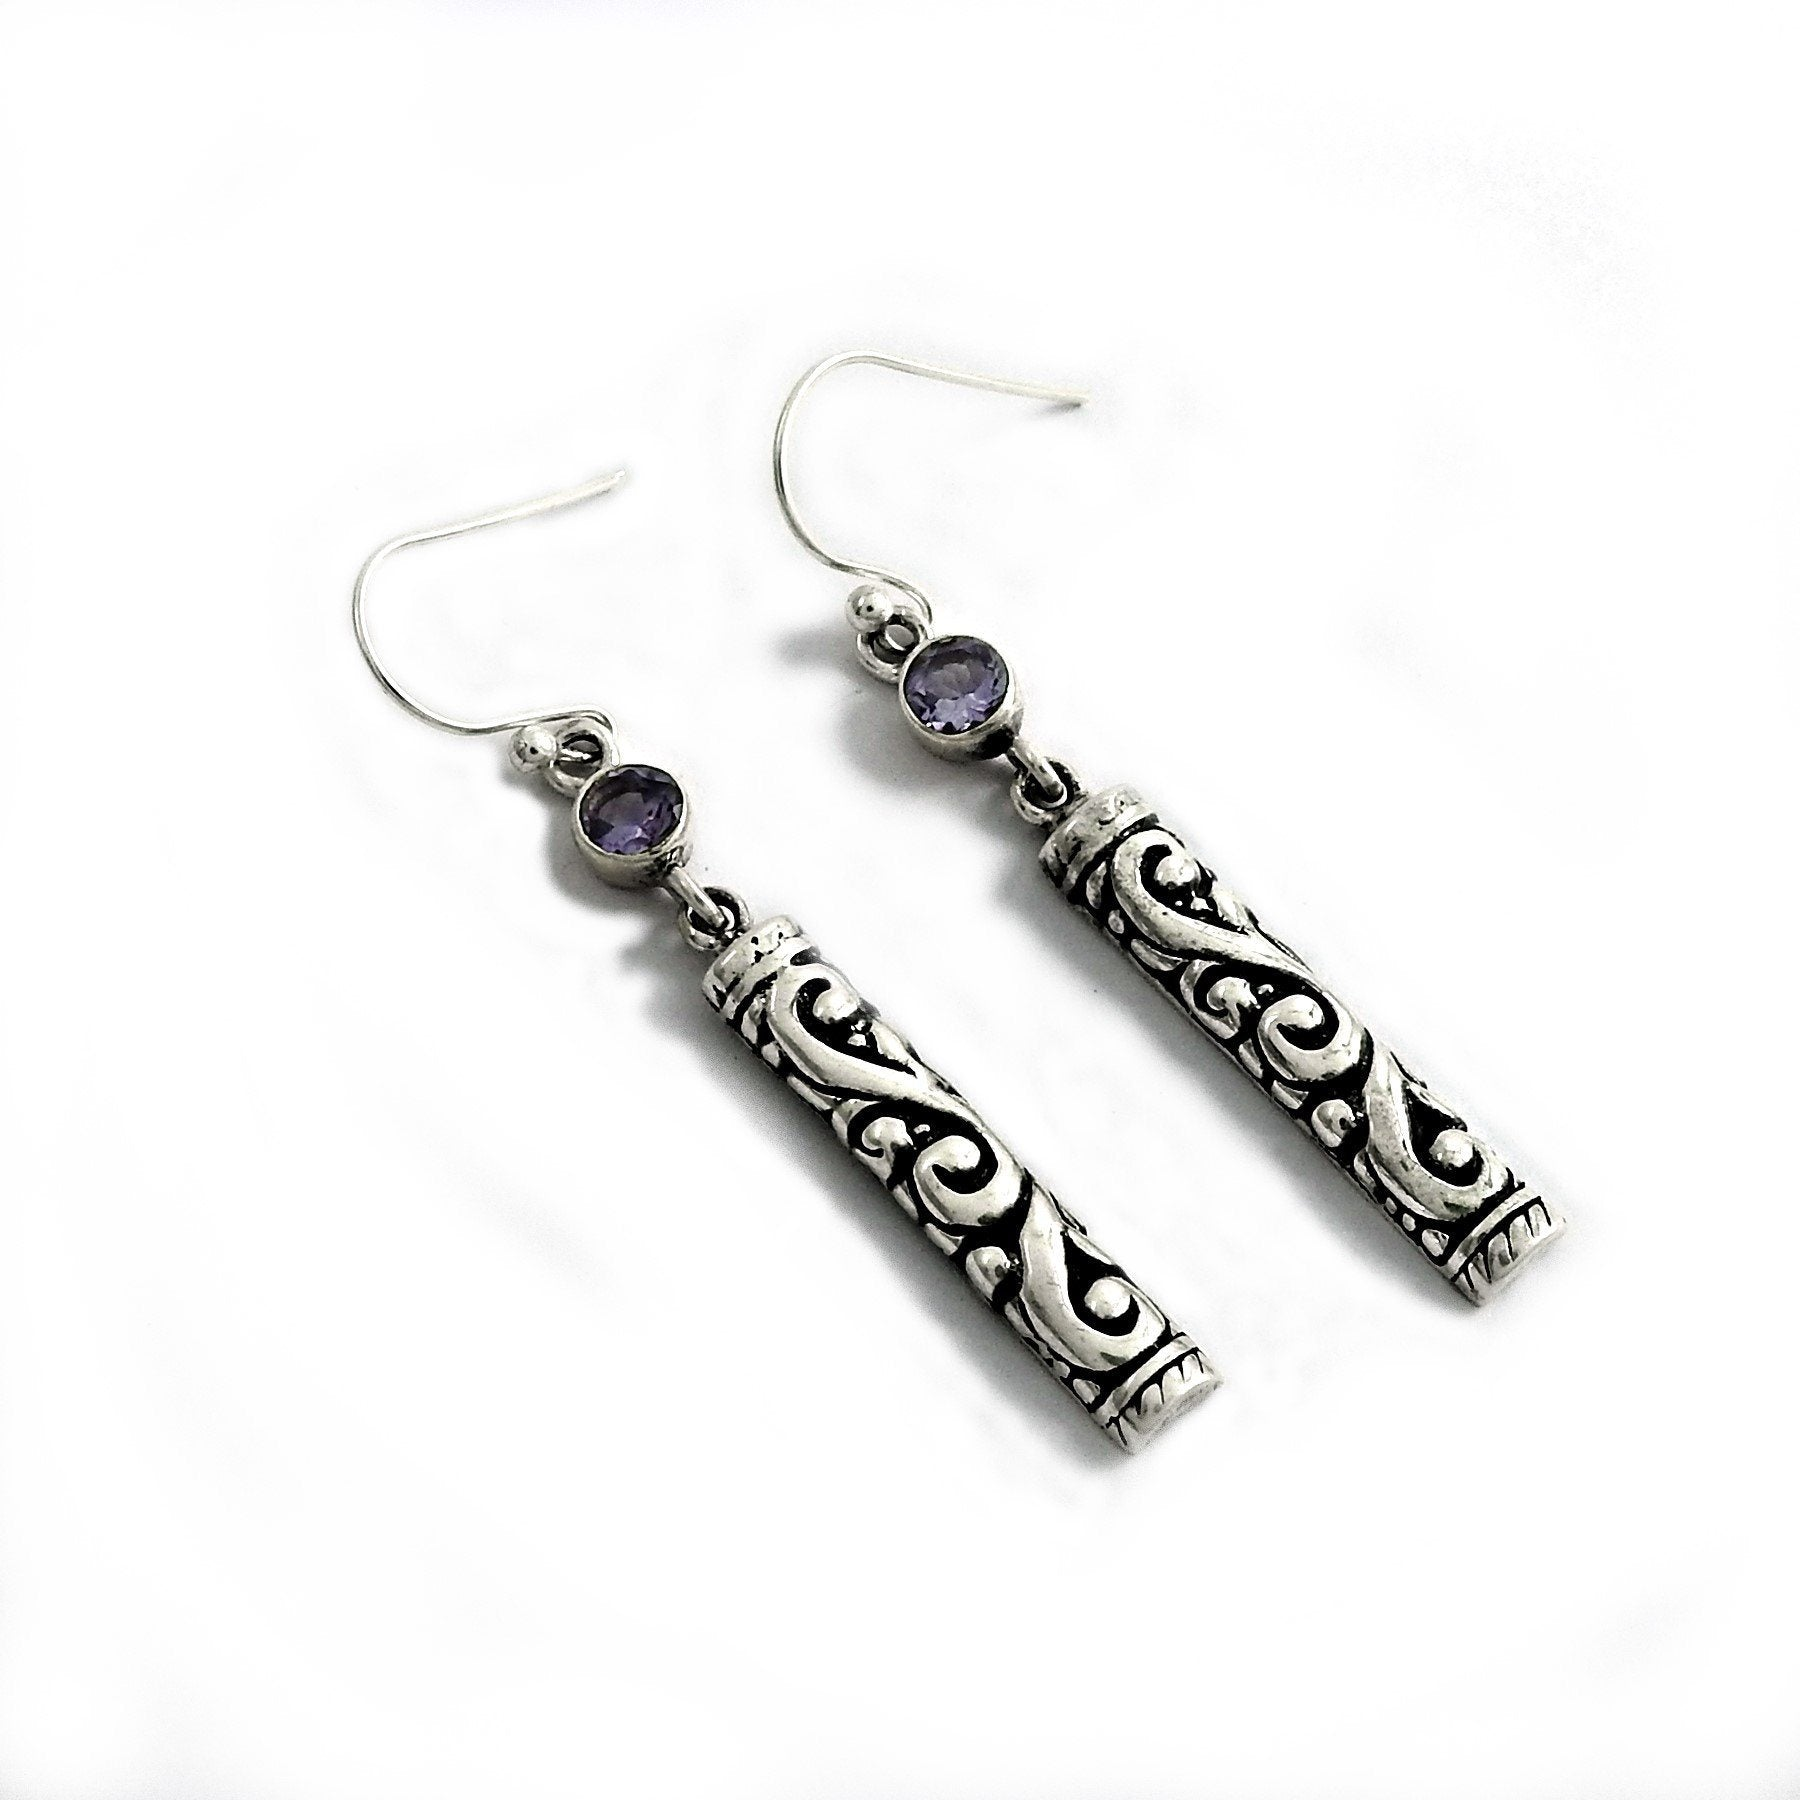 Authentic Handcrafted Color Zircon Sterling Silver Earrings